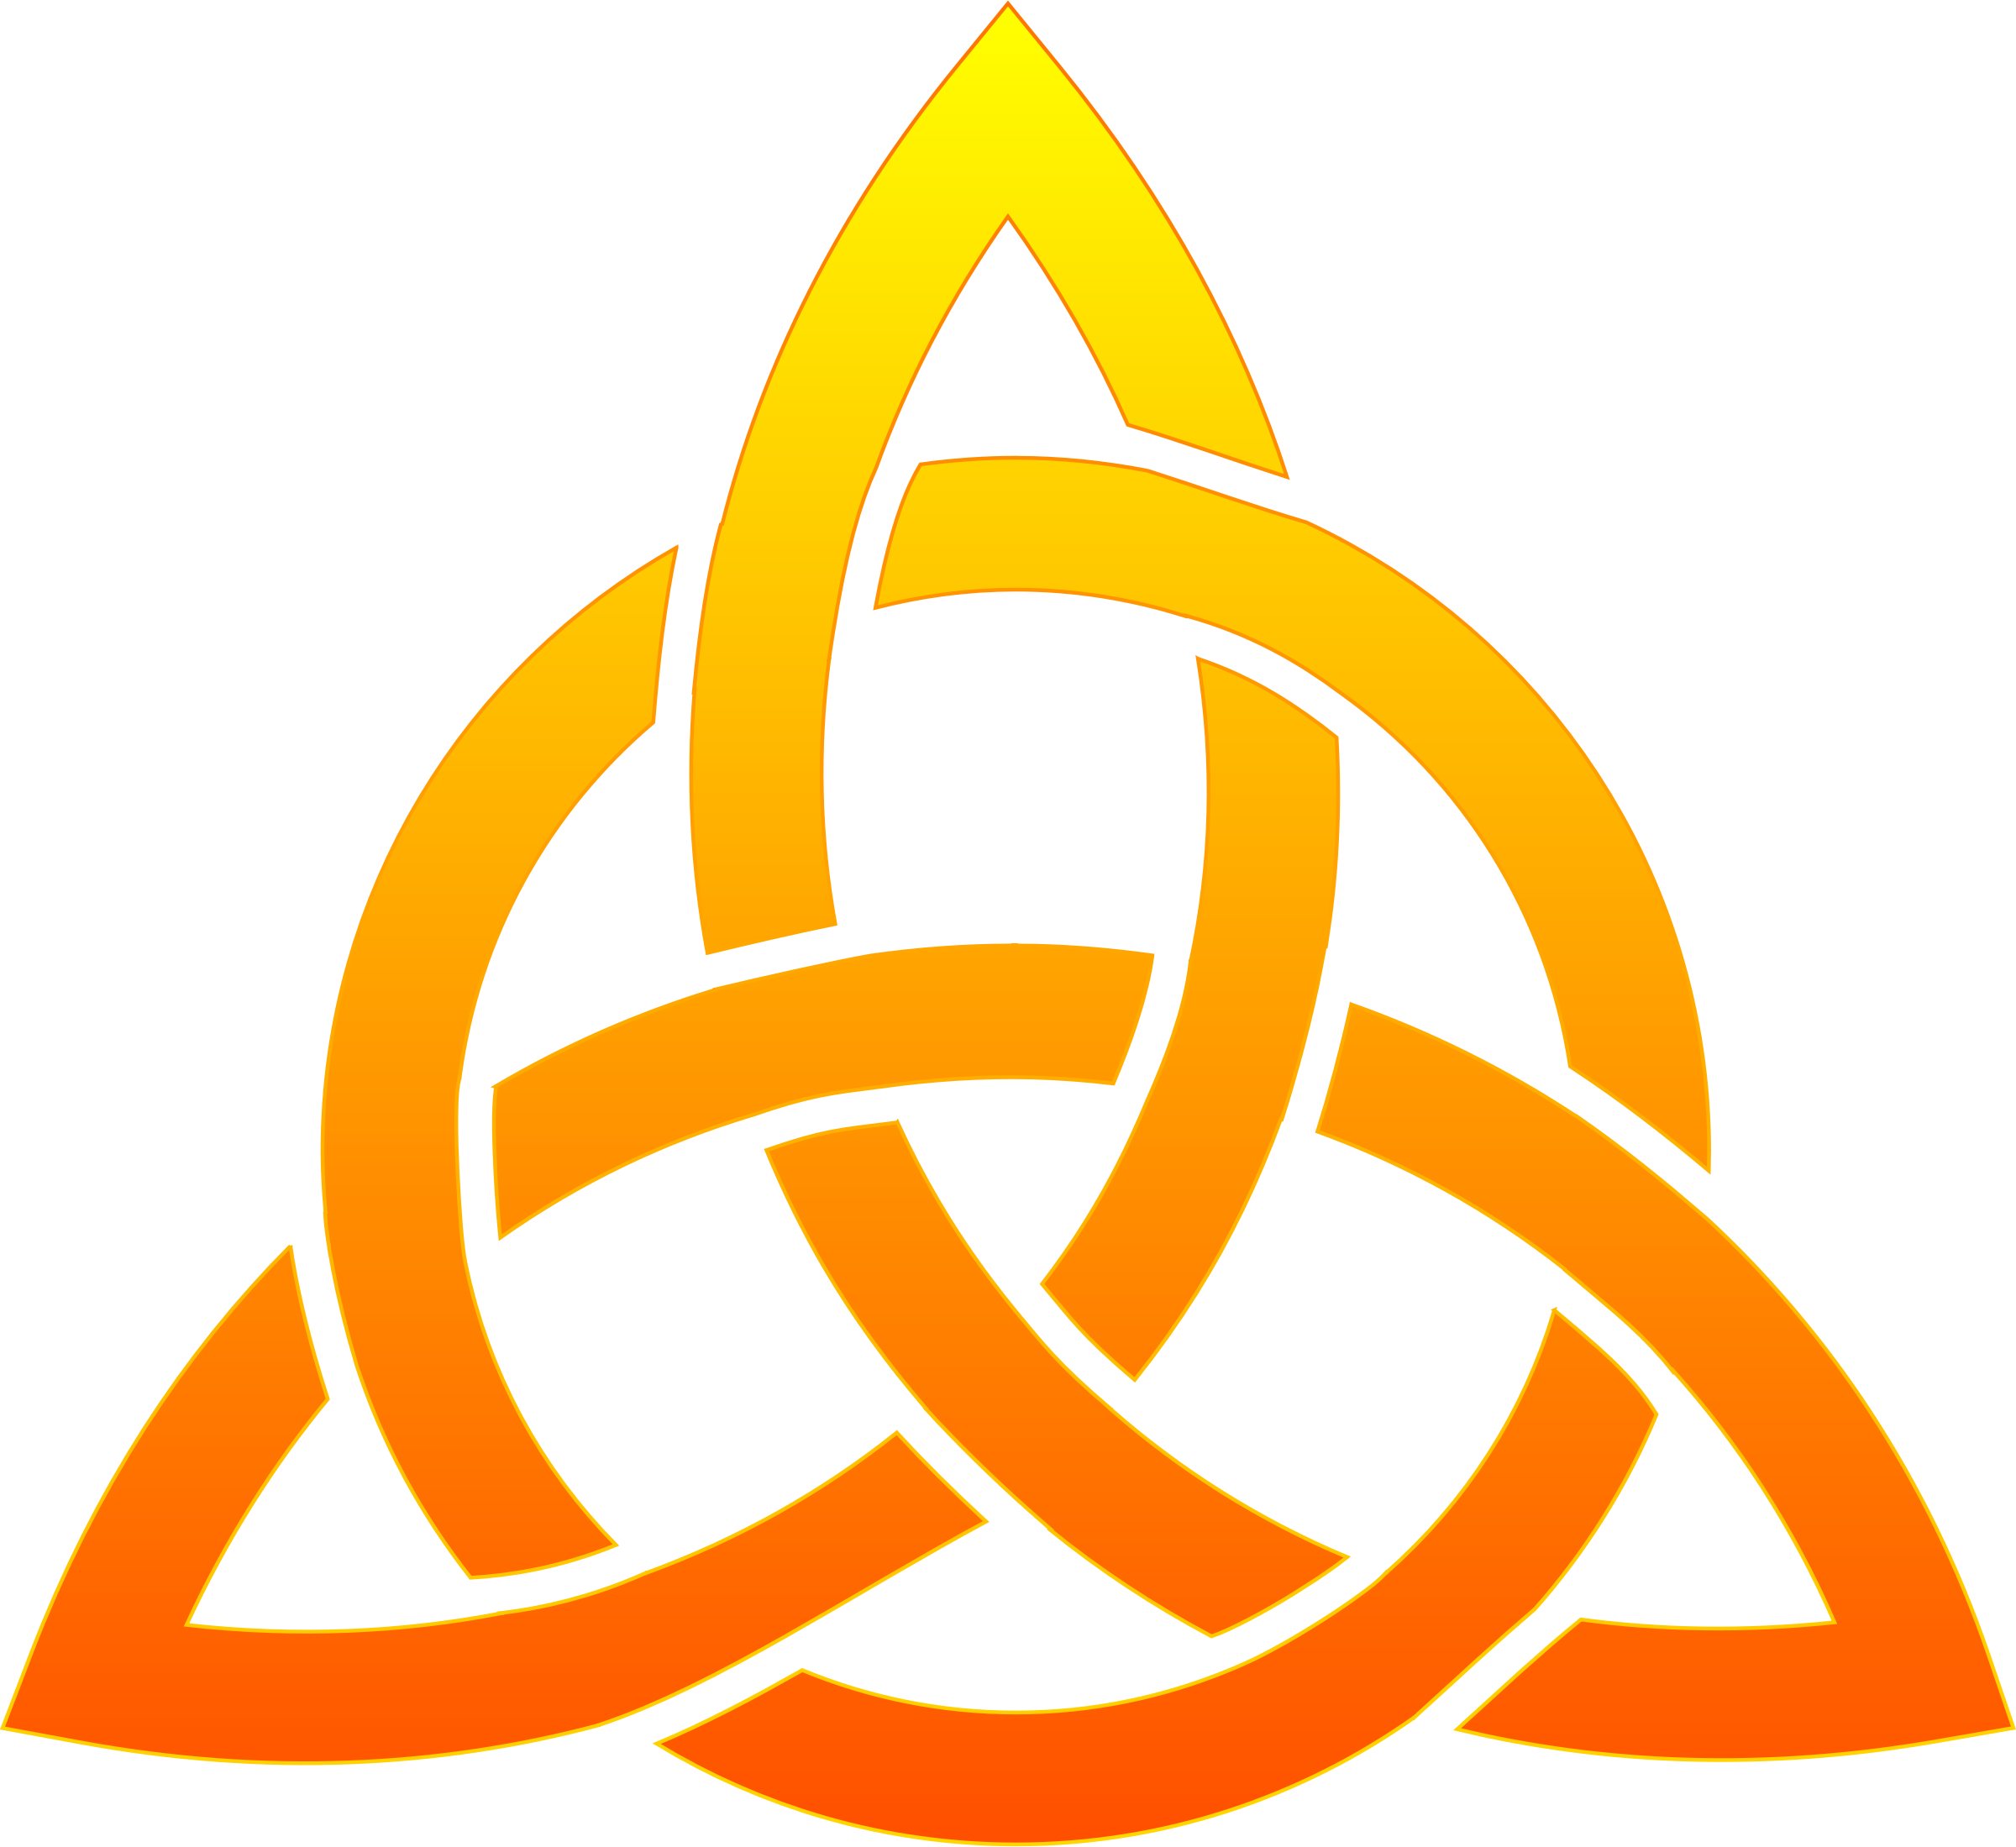 Celtic trinity knot by techwriter celtic trinity knot with some christians believe the trinity is a model for marriage does the trinity model distinct roles and separate spheres or hierarchy and subordination biocorpaavc Image collections